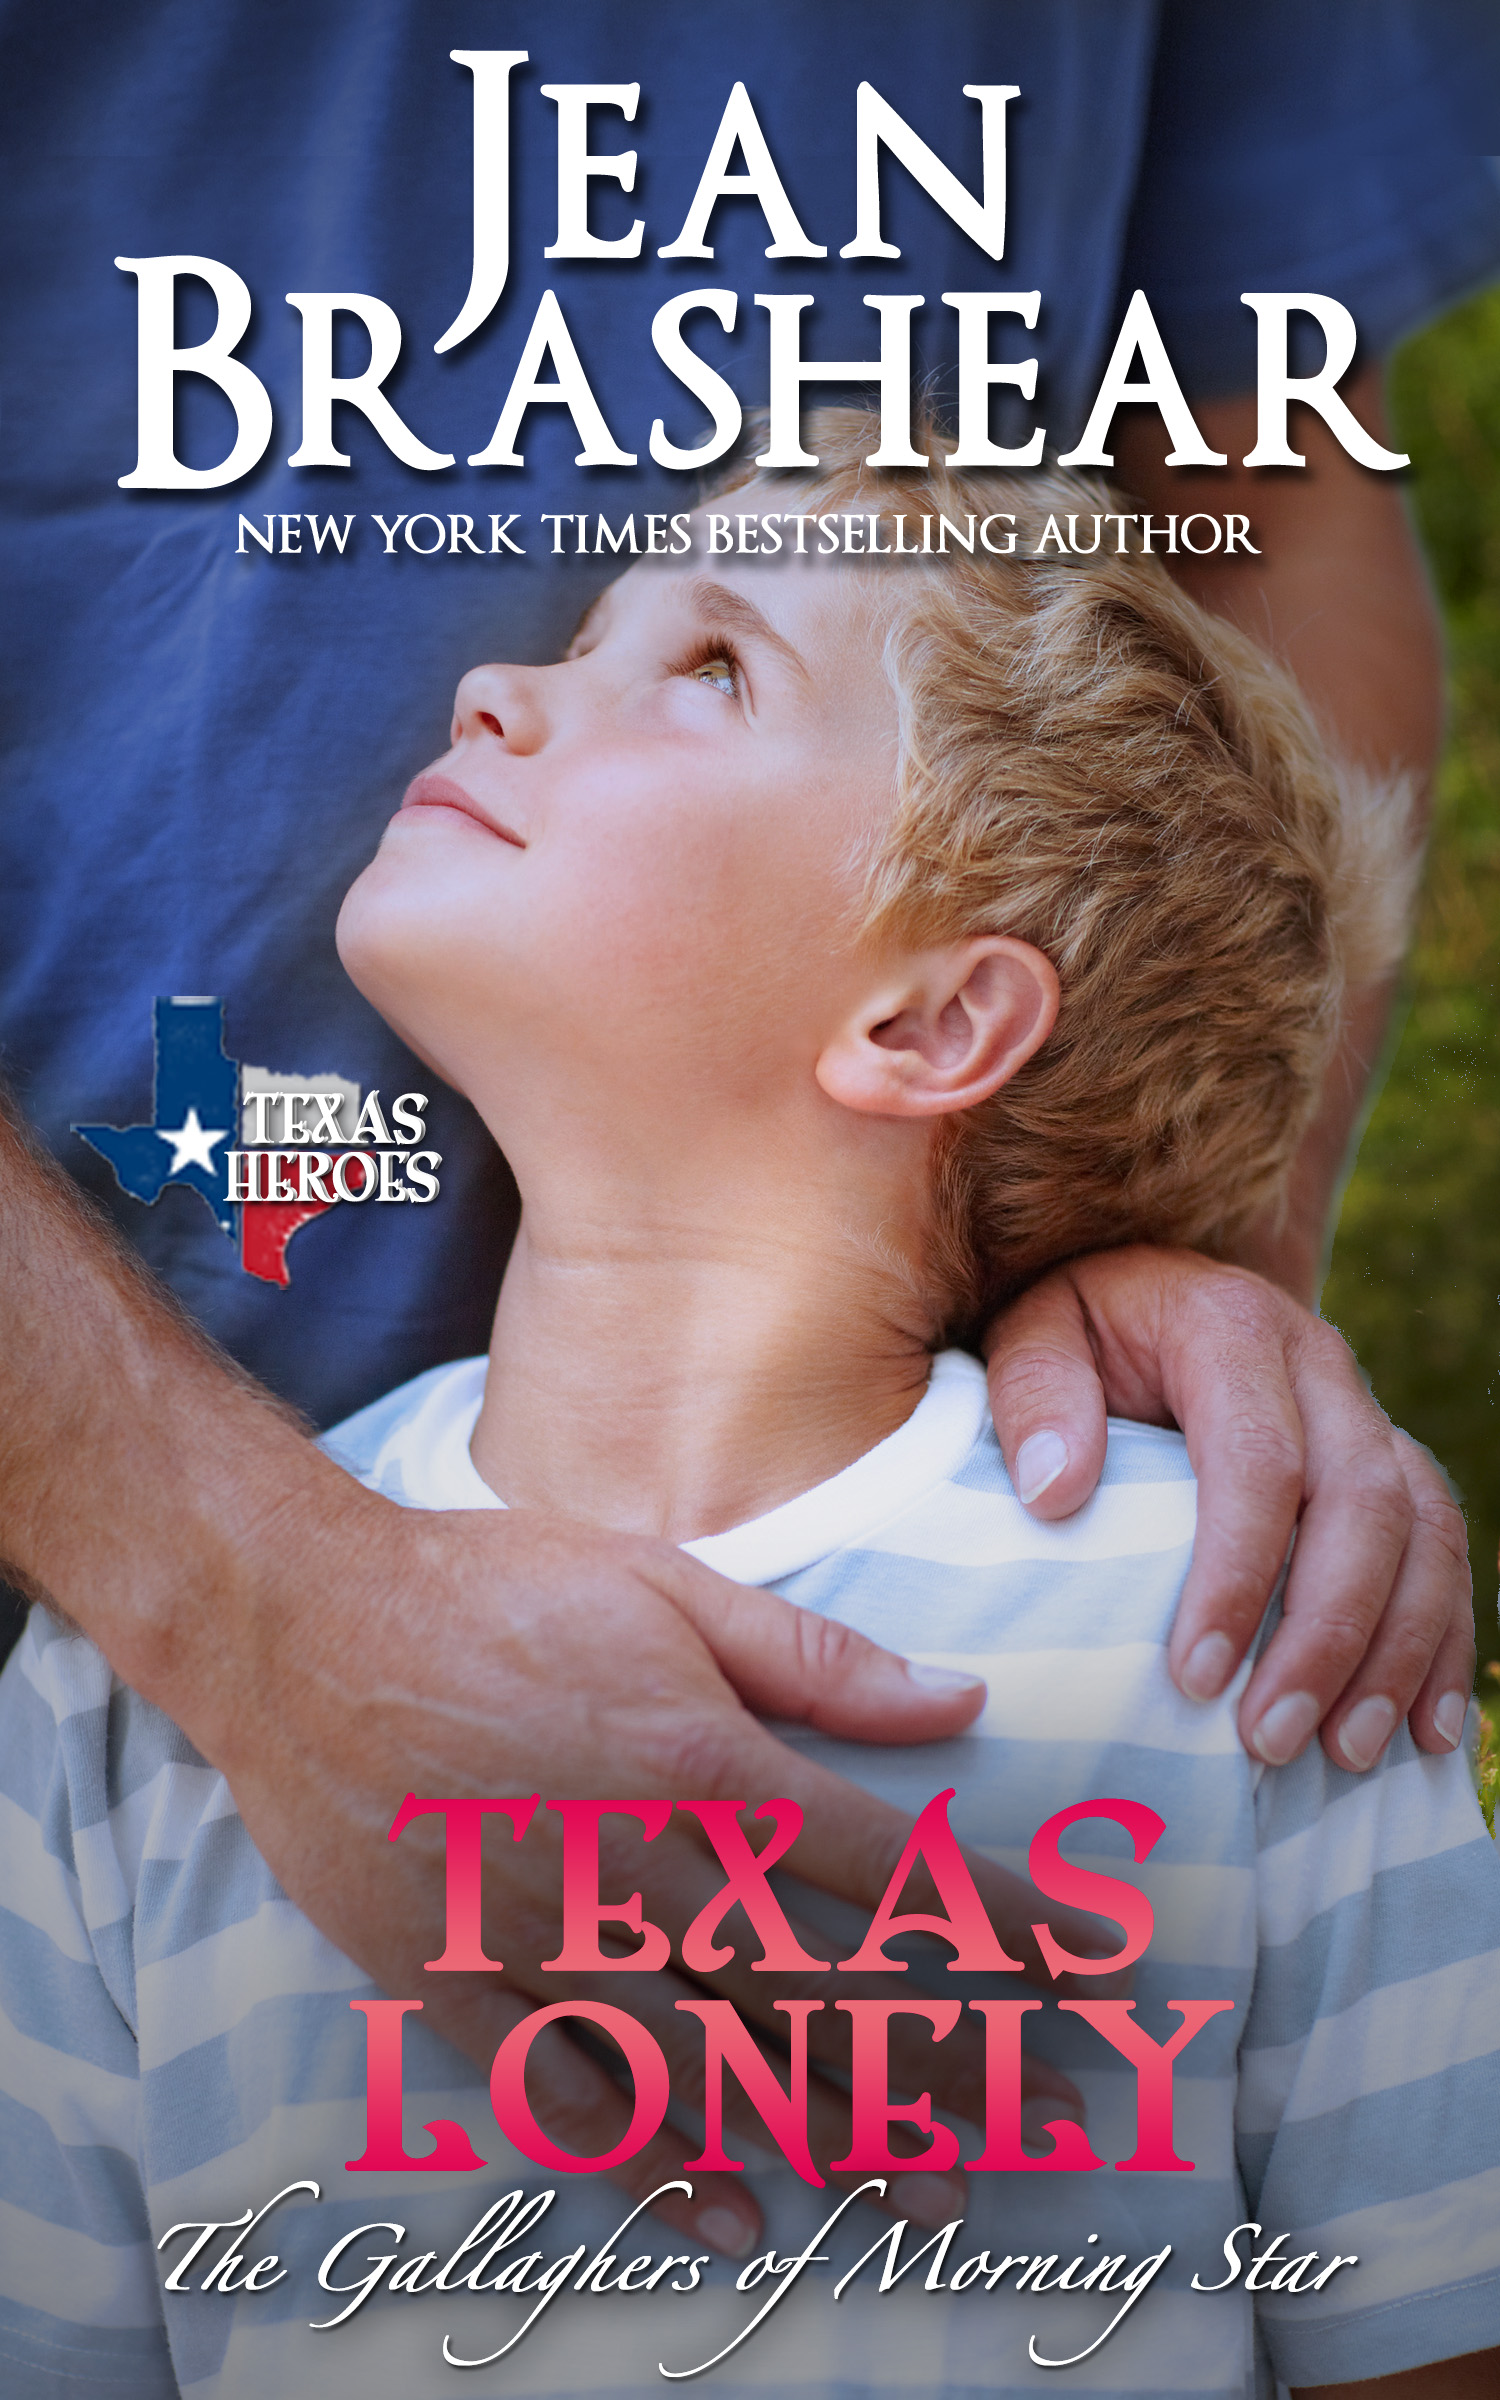 Jean Brashear - Texas Lonely: The Gallaghers of Morning Star Book 2